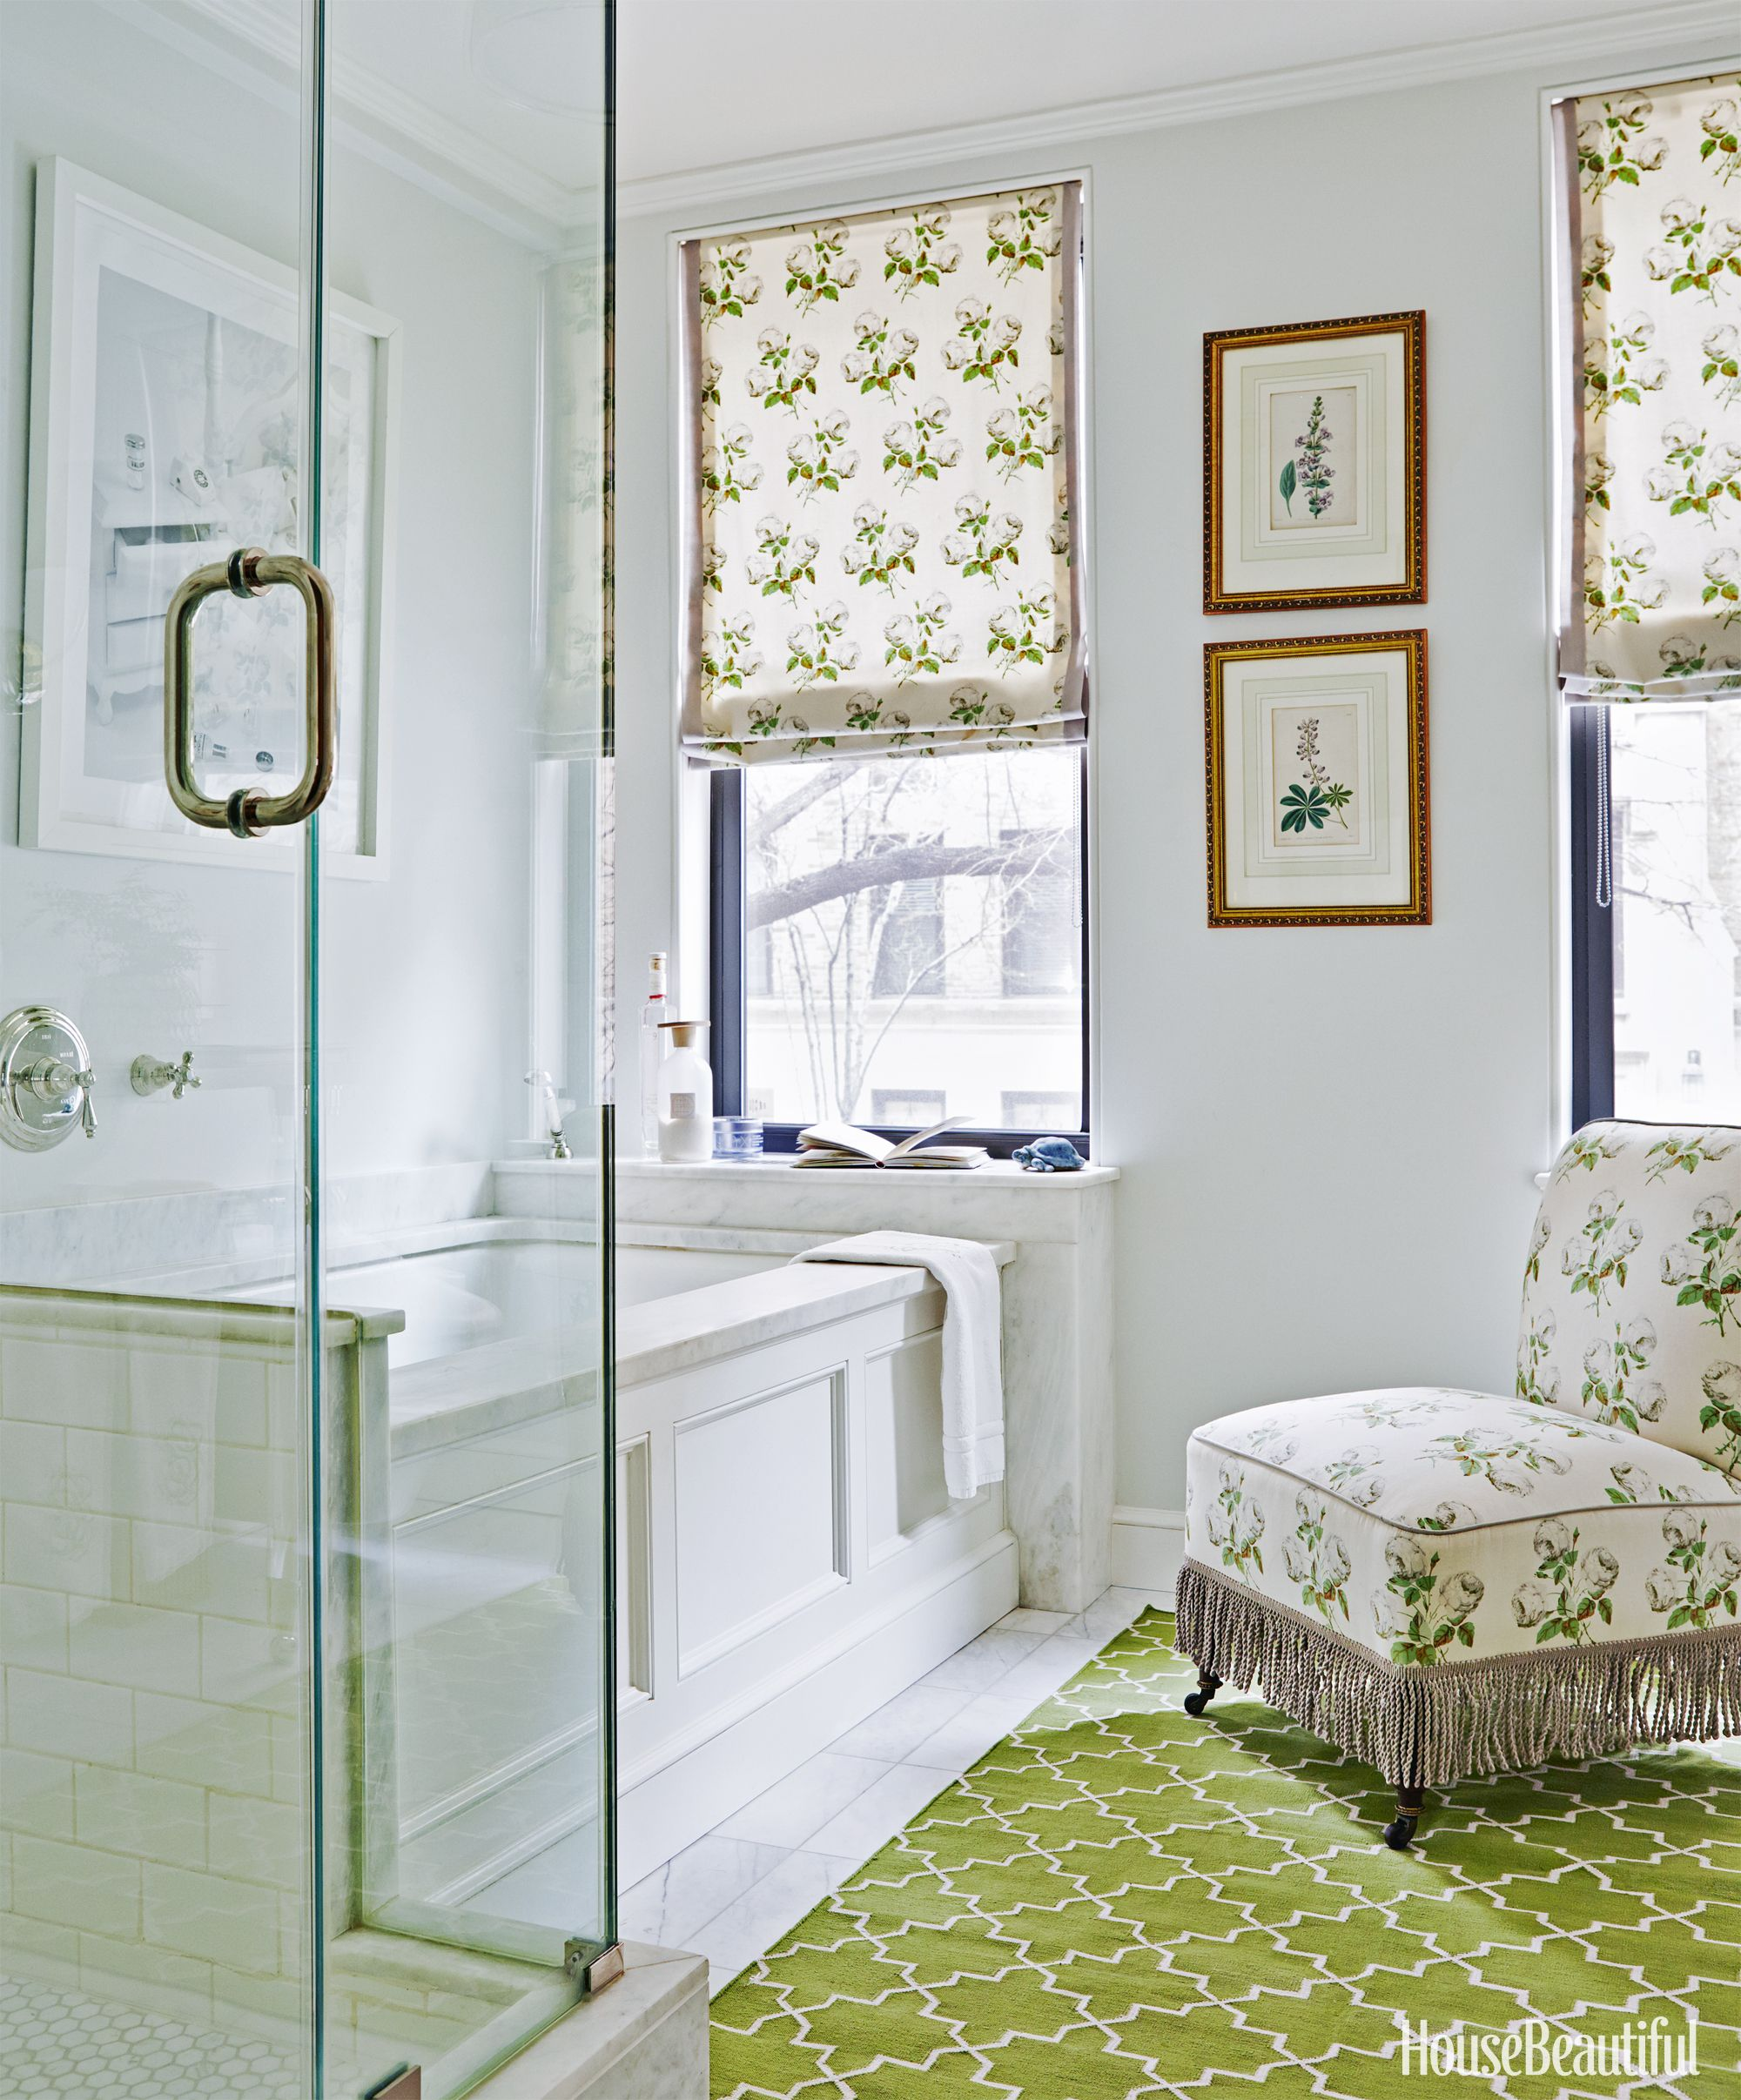 Brockschmidt And Coleman Apartment. Christopher Sturman. Floral Bathroom